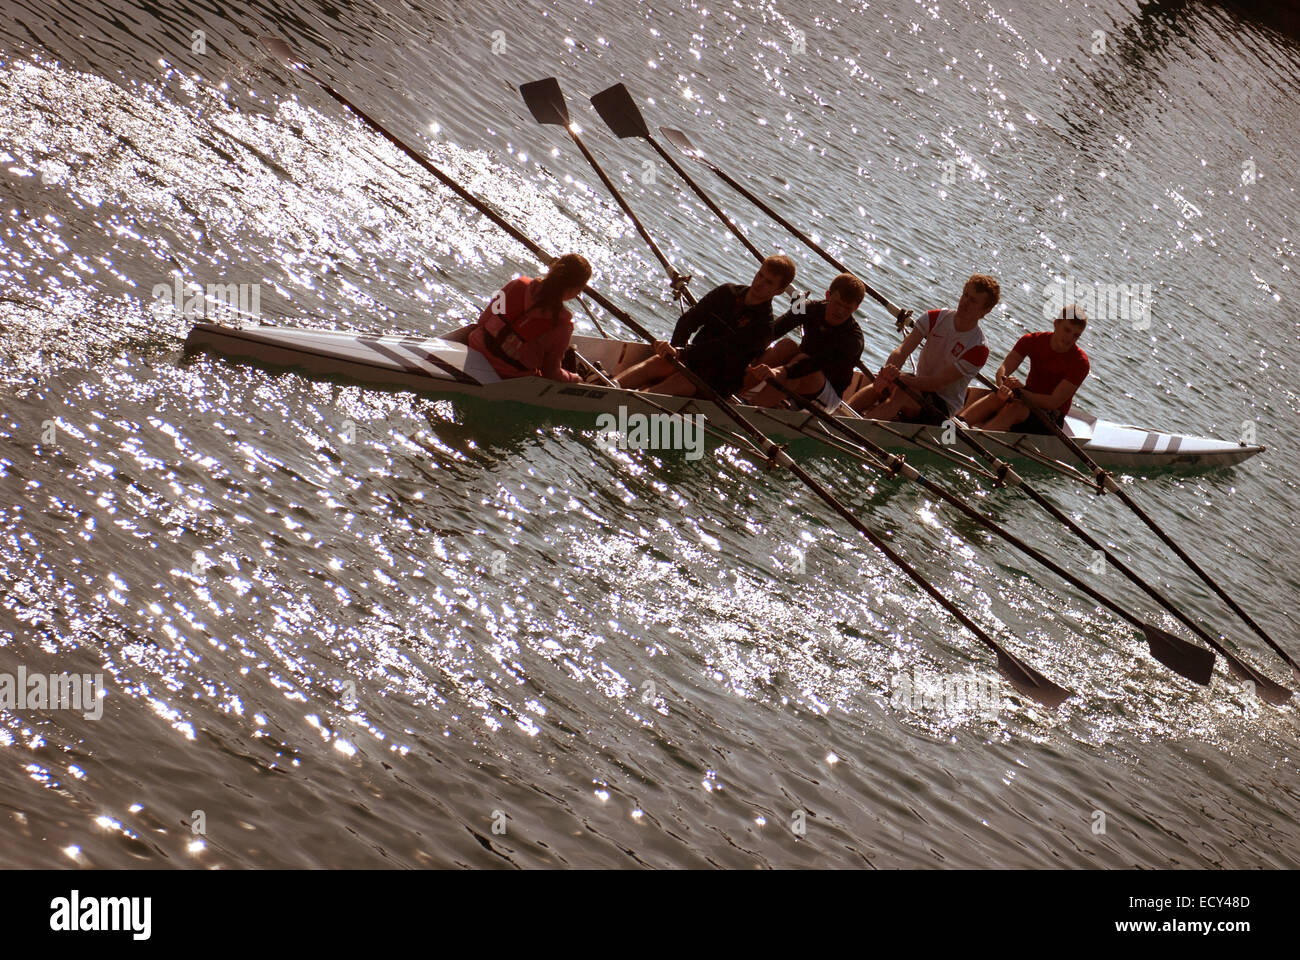 Coxed four / rowing boat - Stock Image